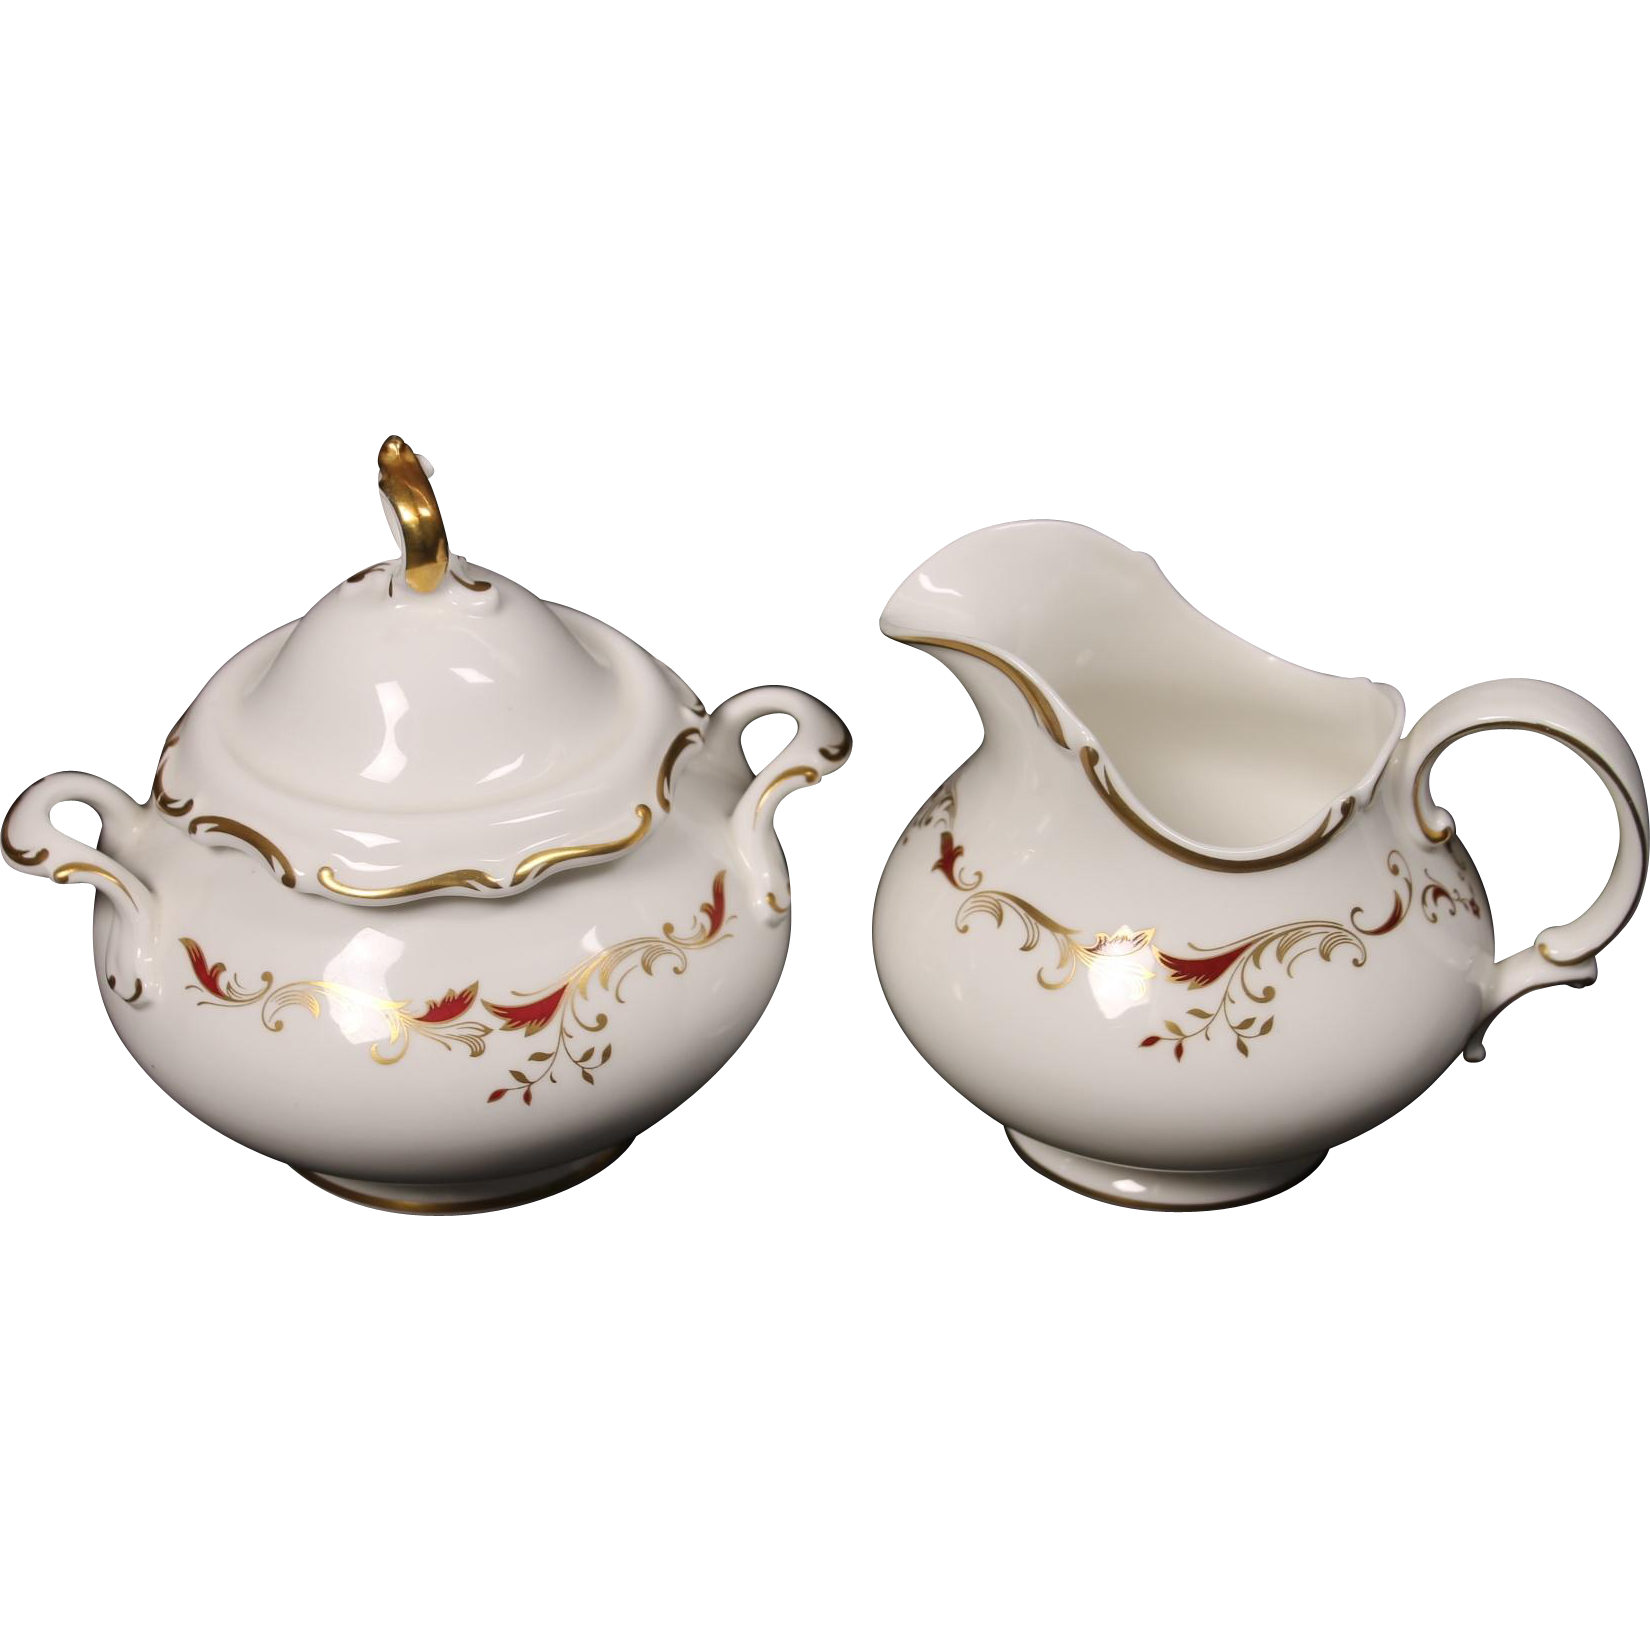 Royal Doulton Bone China Creamer and Covered Sugar (lid cracked) in the Strasbourg Pattern